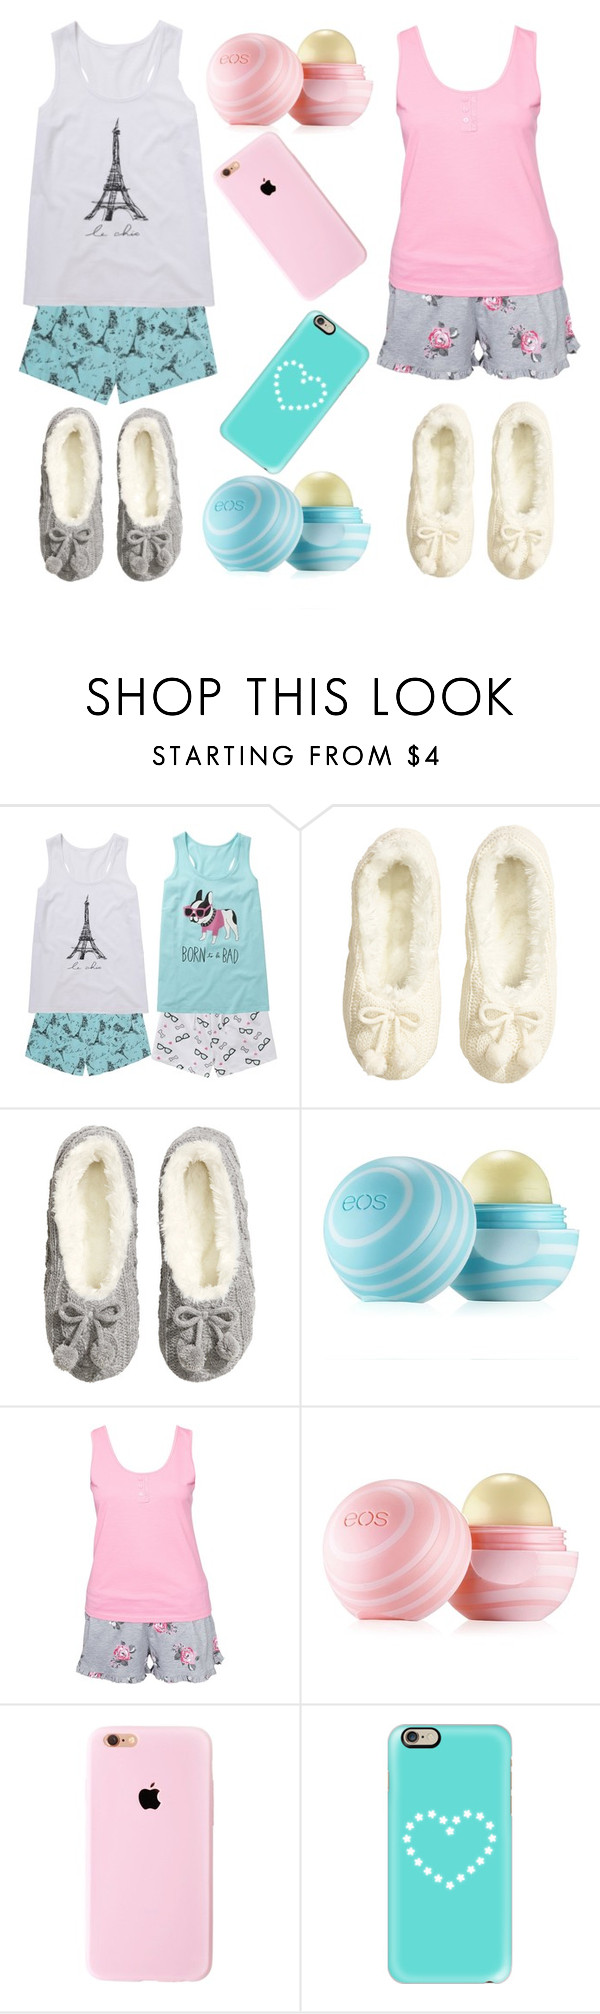 """""""Bestie sleepover """" by pink-paris-love07 ❤ liked on Polyvore featuring interior, interiors, interior design, home, home decor, interior decorating, H&M, Eos, Hunkemöller and Casetify"""